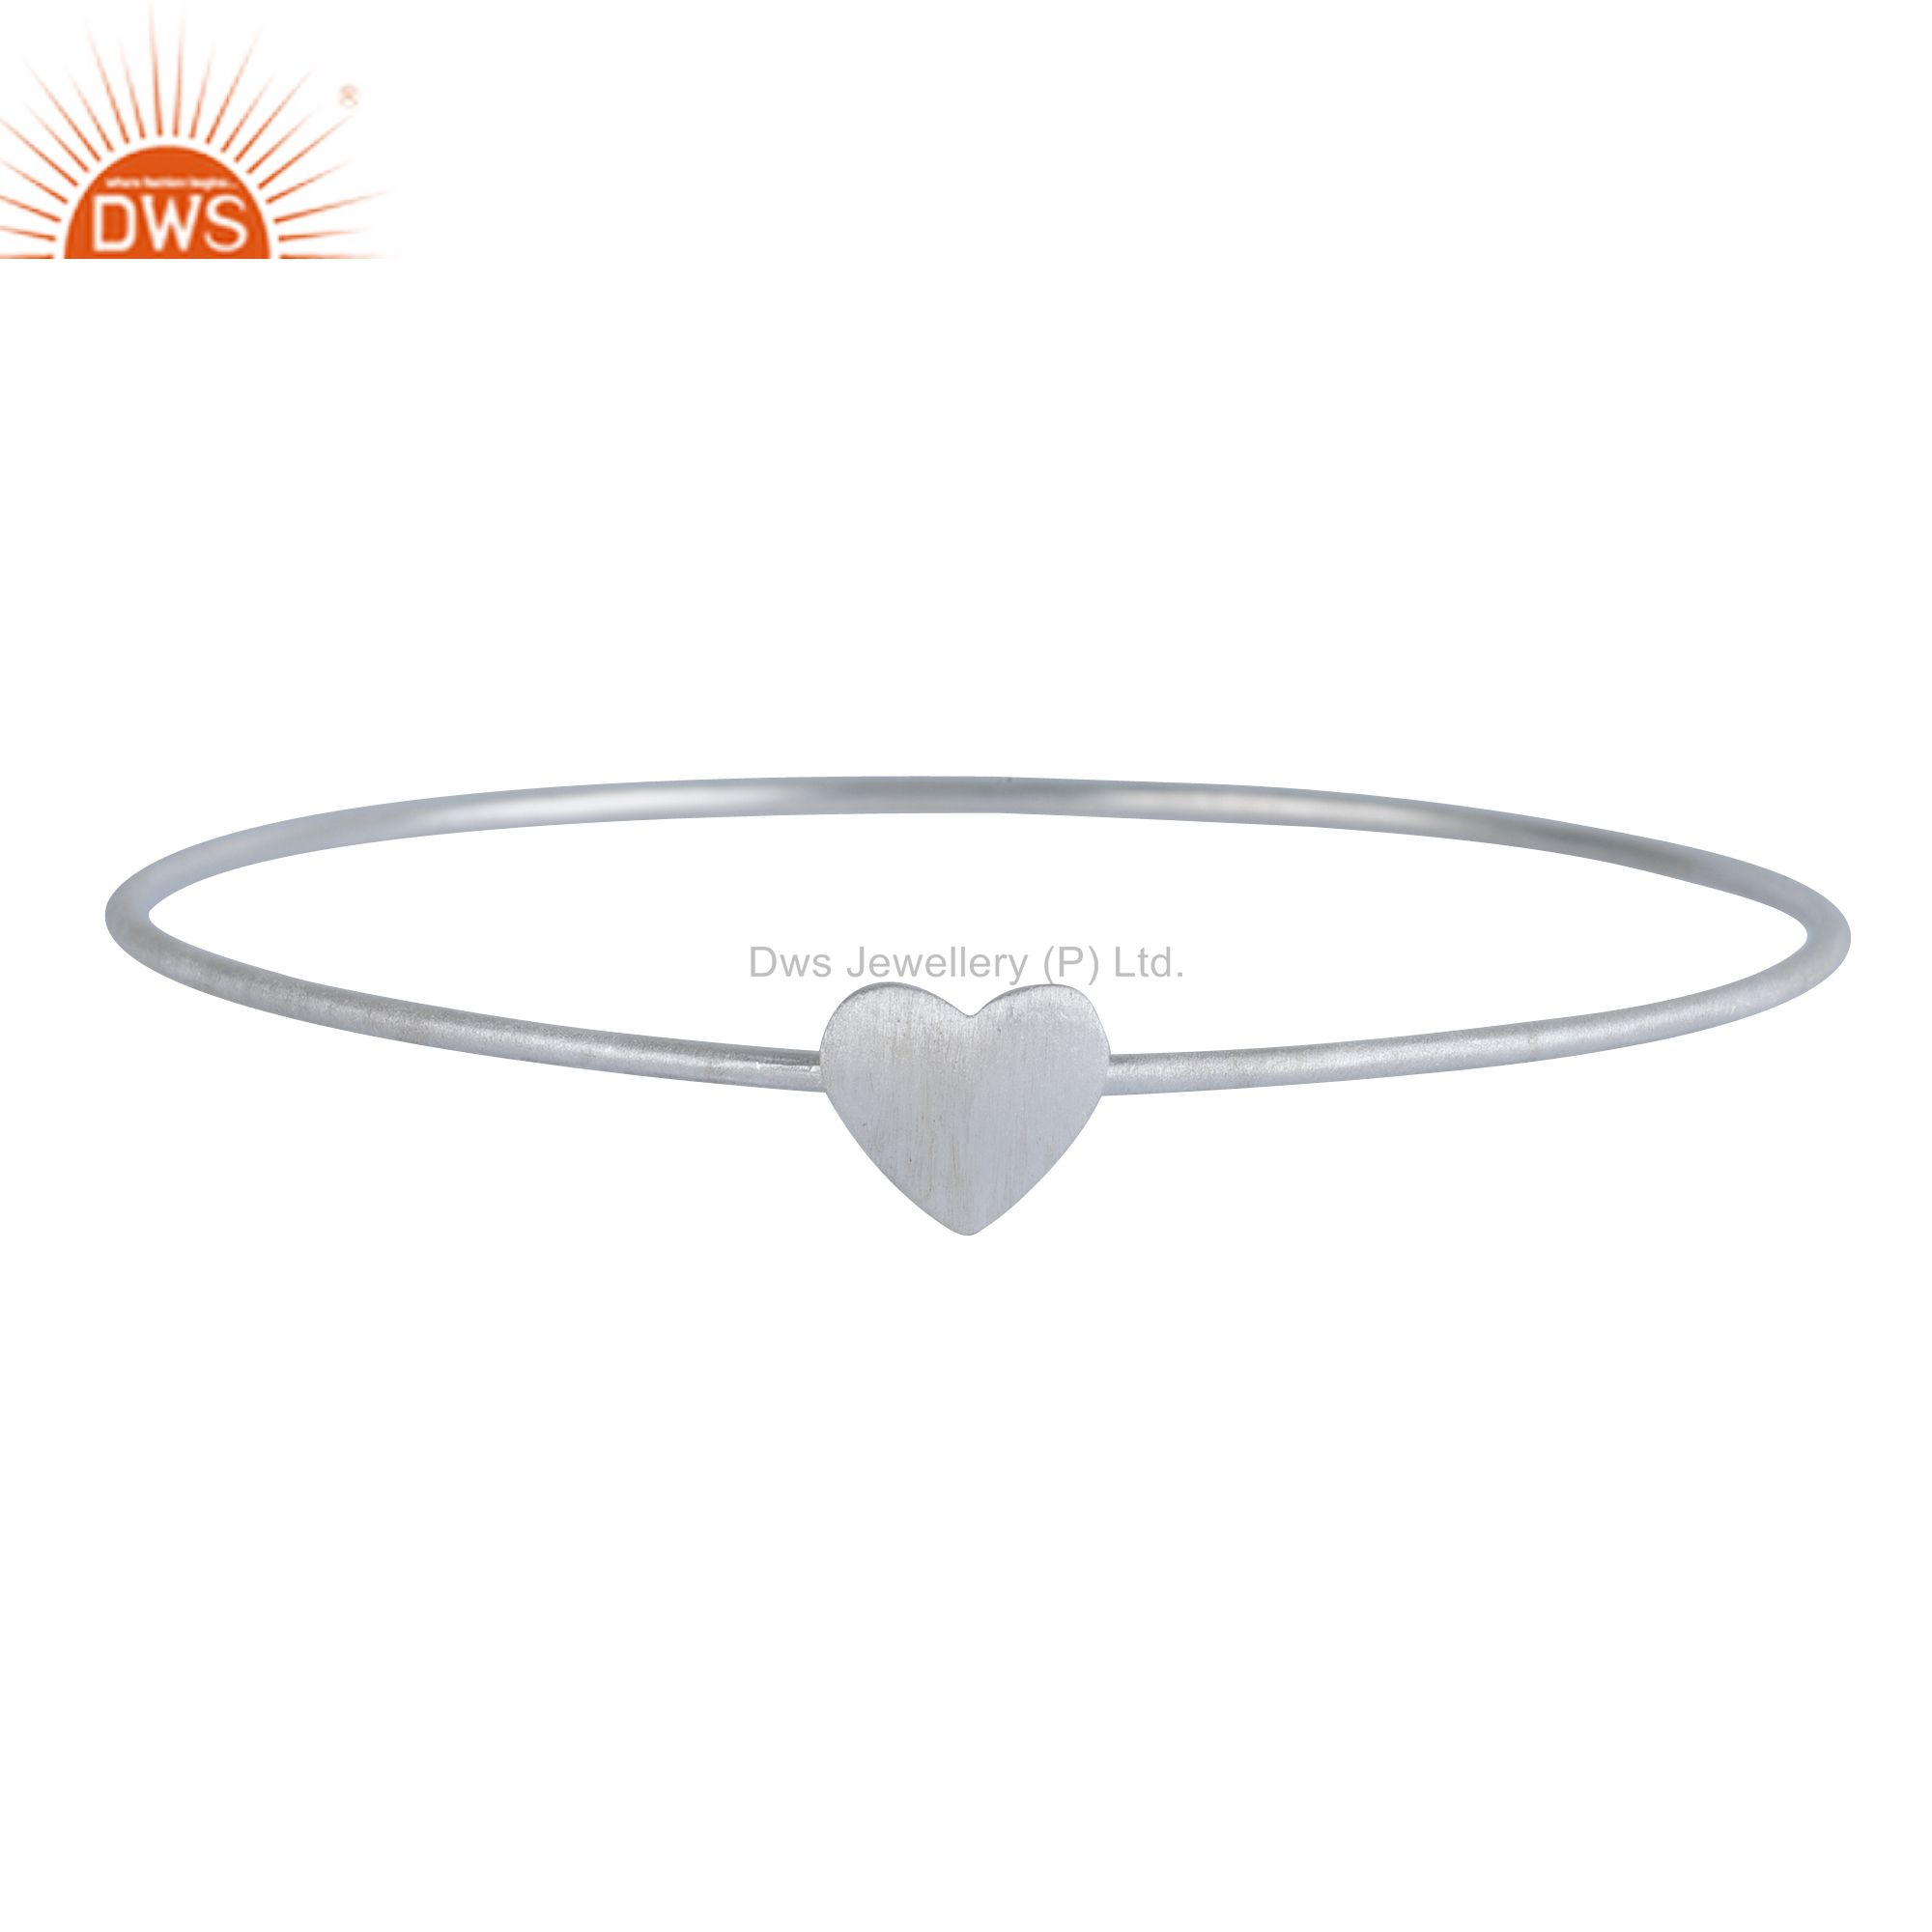 Handmade 925 Solid Sterling Silver Stackable Heart Bangle Bracelet Jewelry